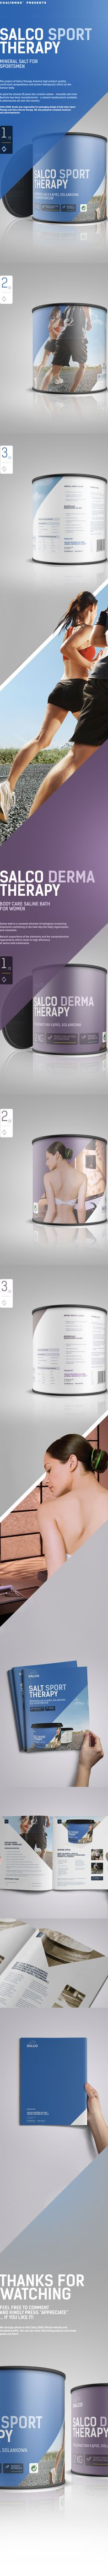 Salco Sport & Derma Therapy on Behance